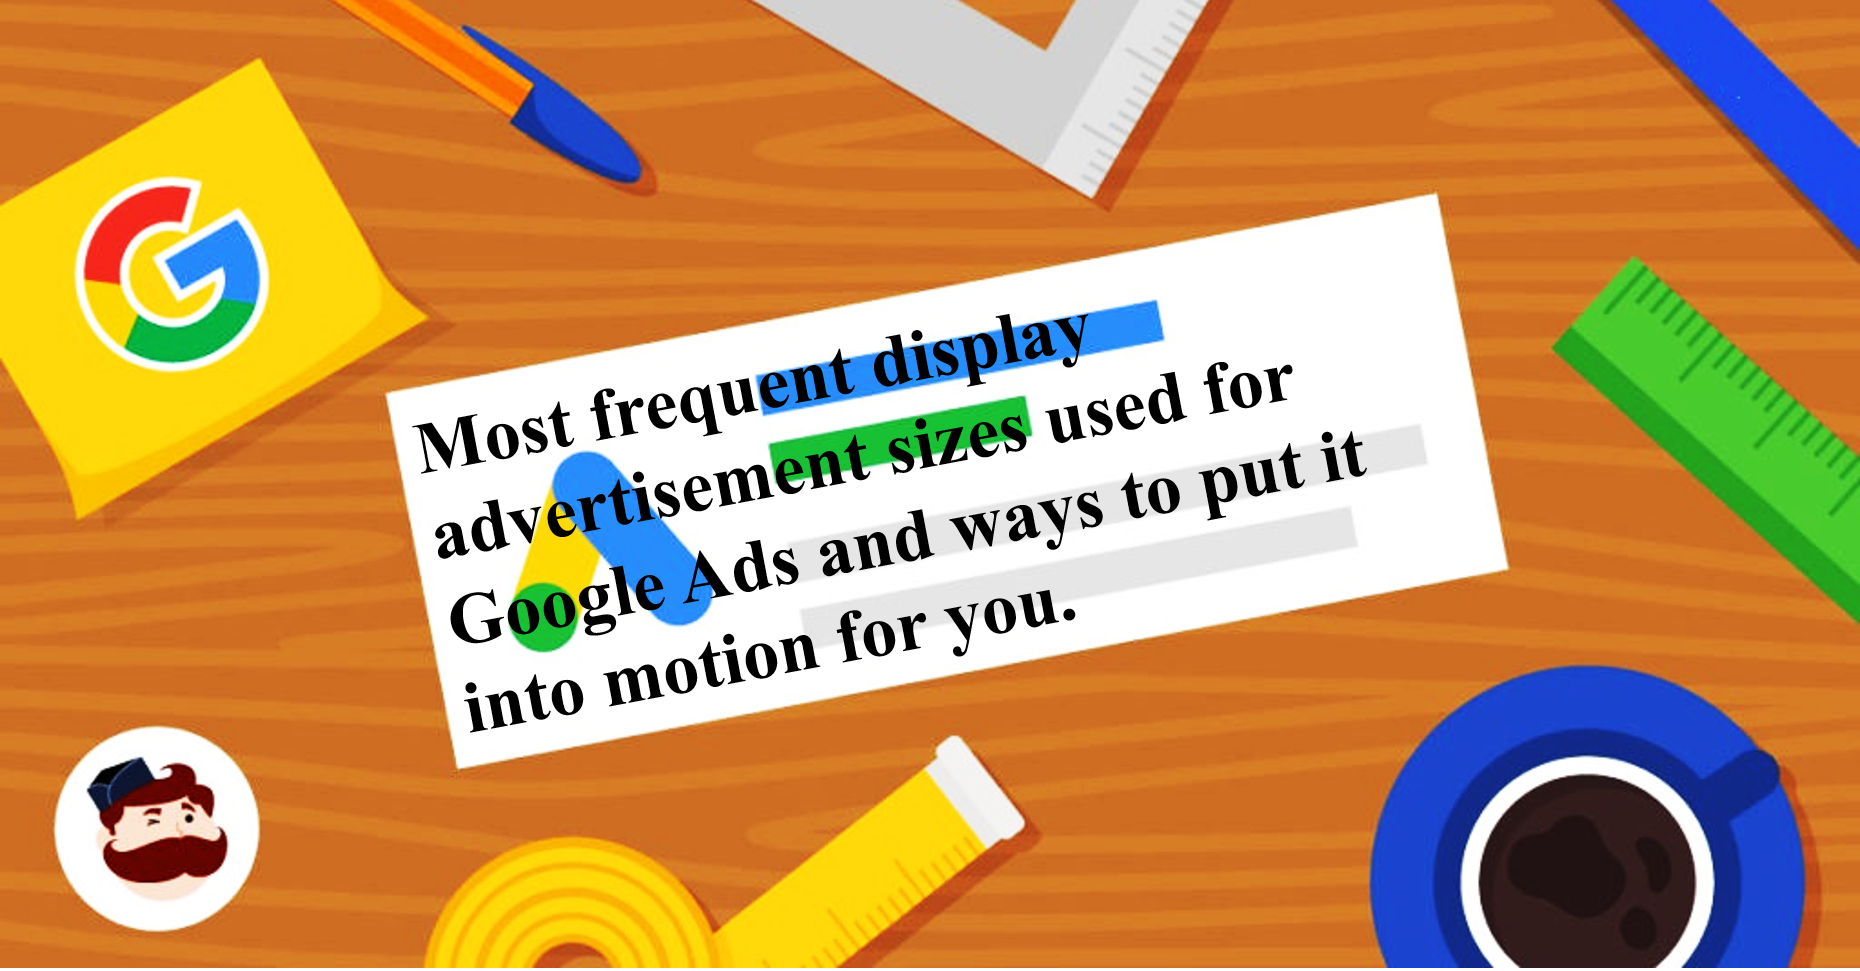 Most frequent display advertisement sizes used for Google Ads and ways to put it into motion for you.